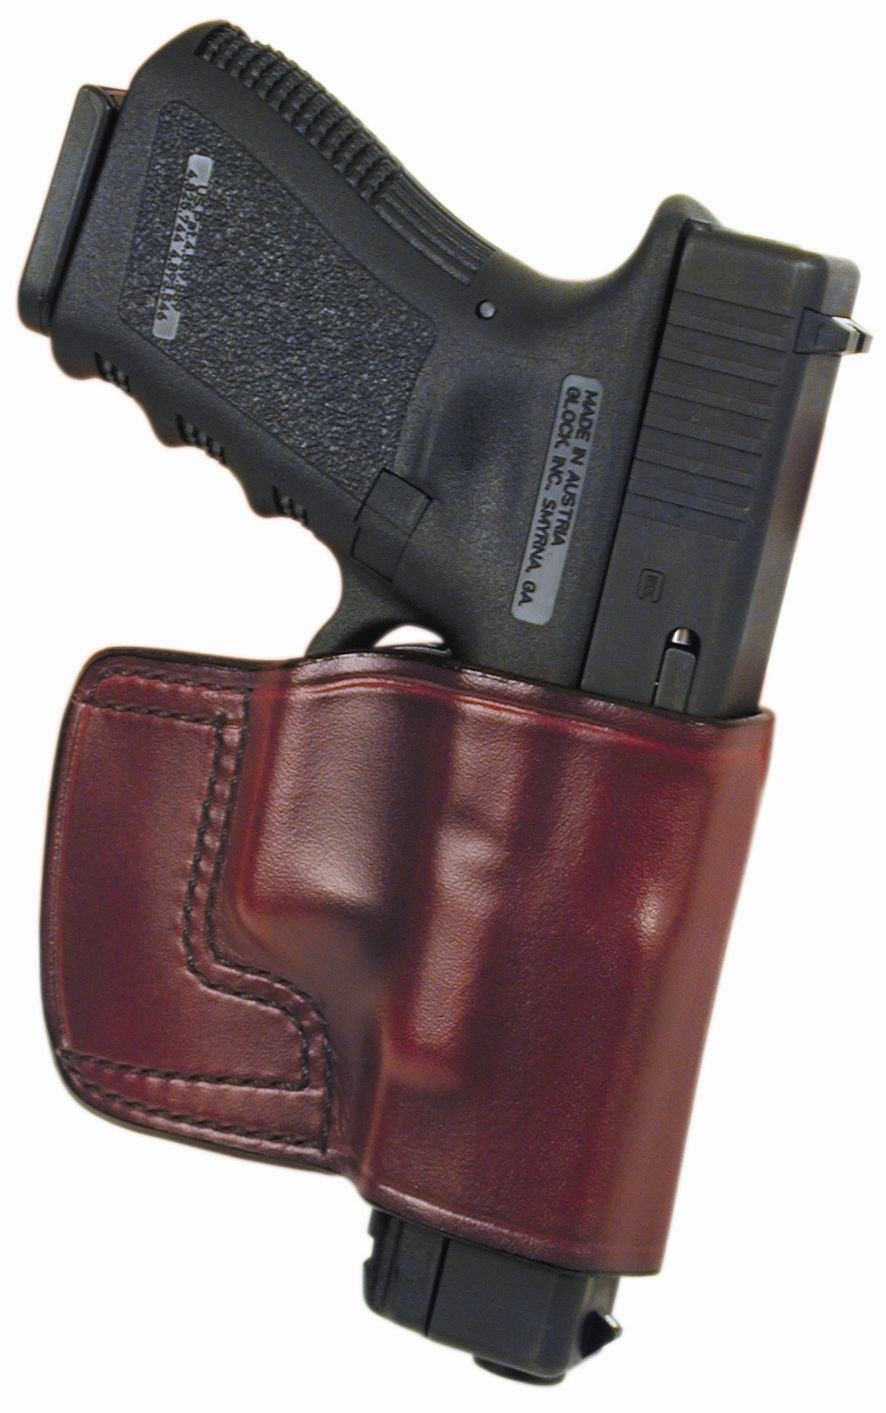 *J.I.T. SLIDE PLAIN BELT HOLSTER